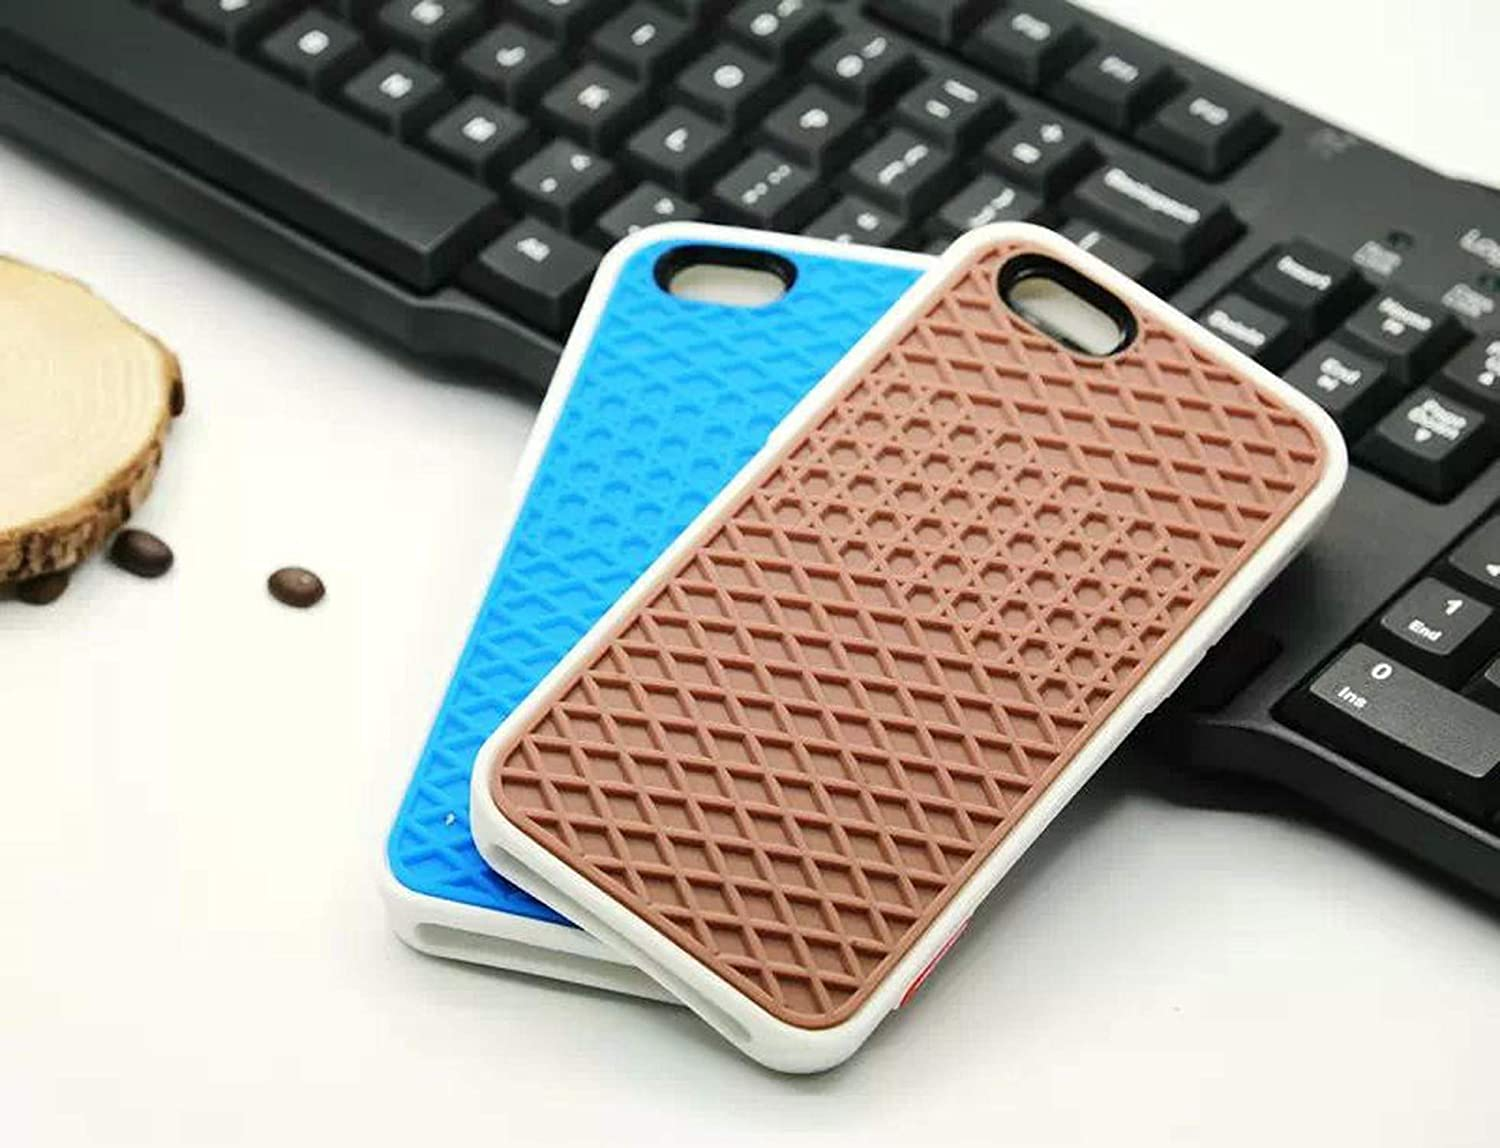 Waffle case Rubber Cover Case for iPhone 11 Pro Max 5S 6 6S 7 8 Plus Xs Max Xr Shoe Sole Phone Case Back Cover-Brown Black-for I11 Pro Max